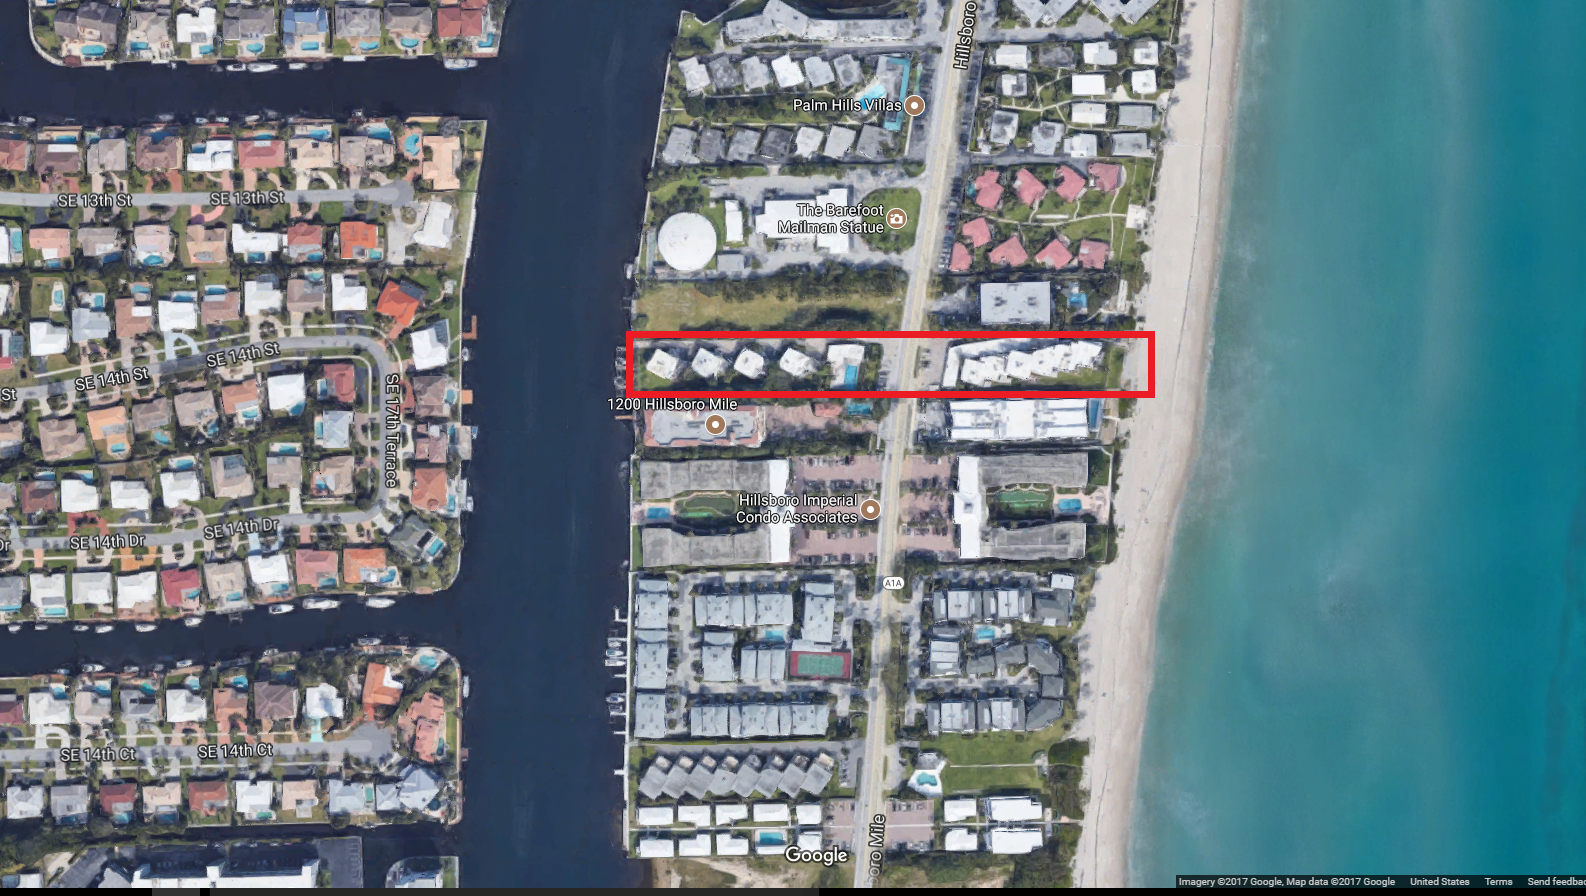 Shoreland 1202 - 1203 Hillsboro Mile, Hillsboro Beach, FL 33062 condominiums for sale